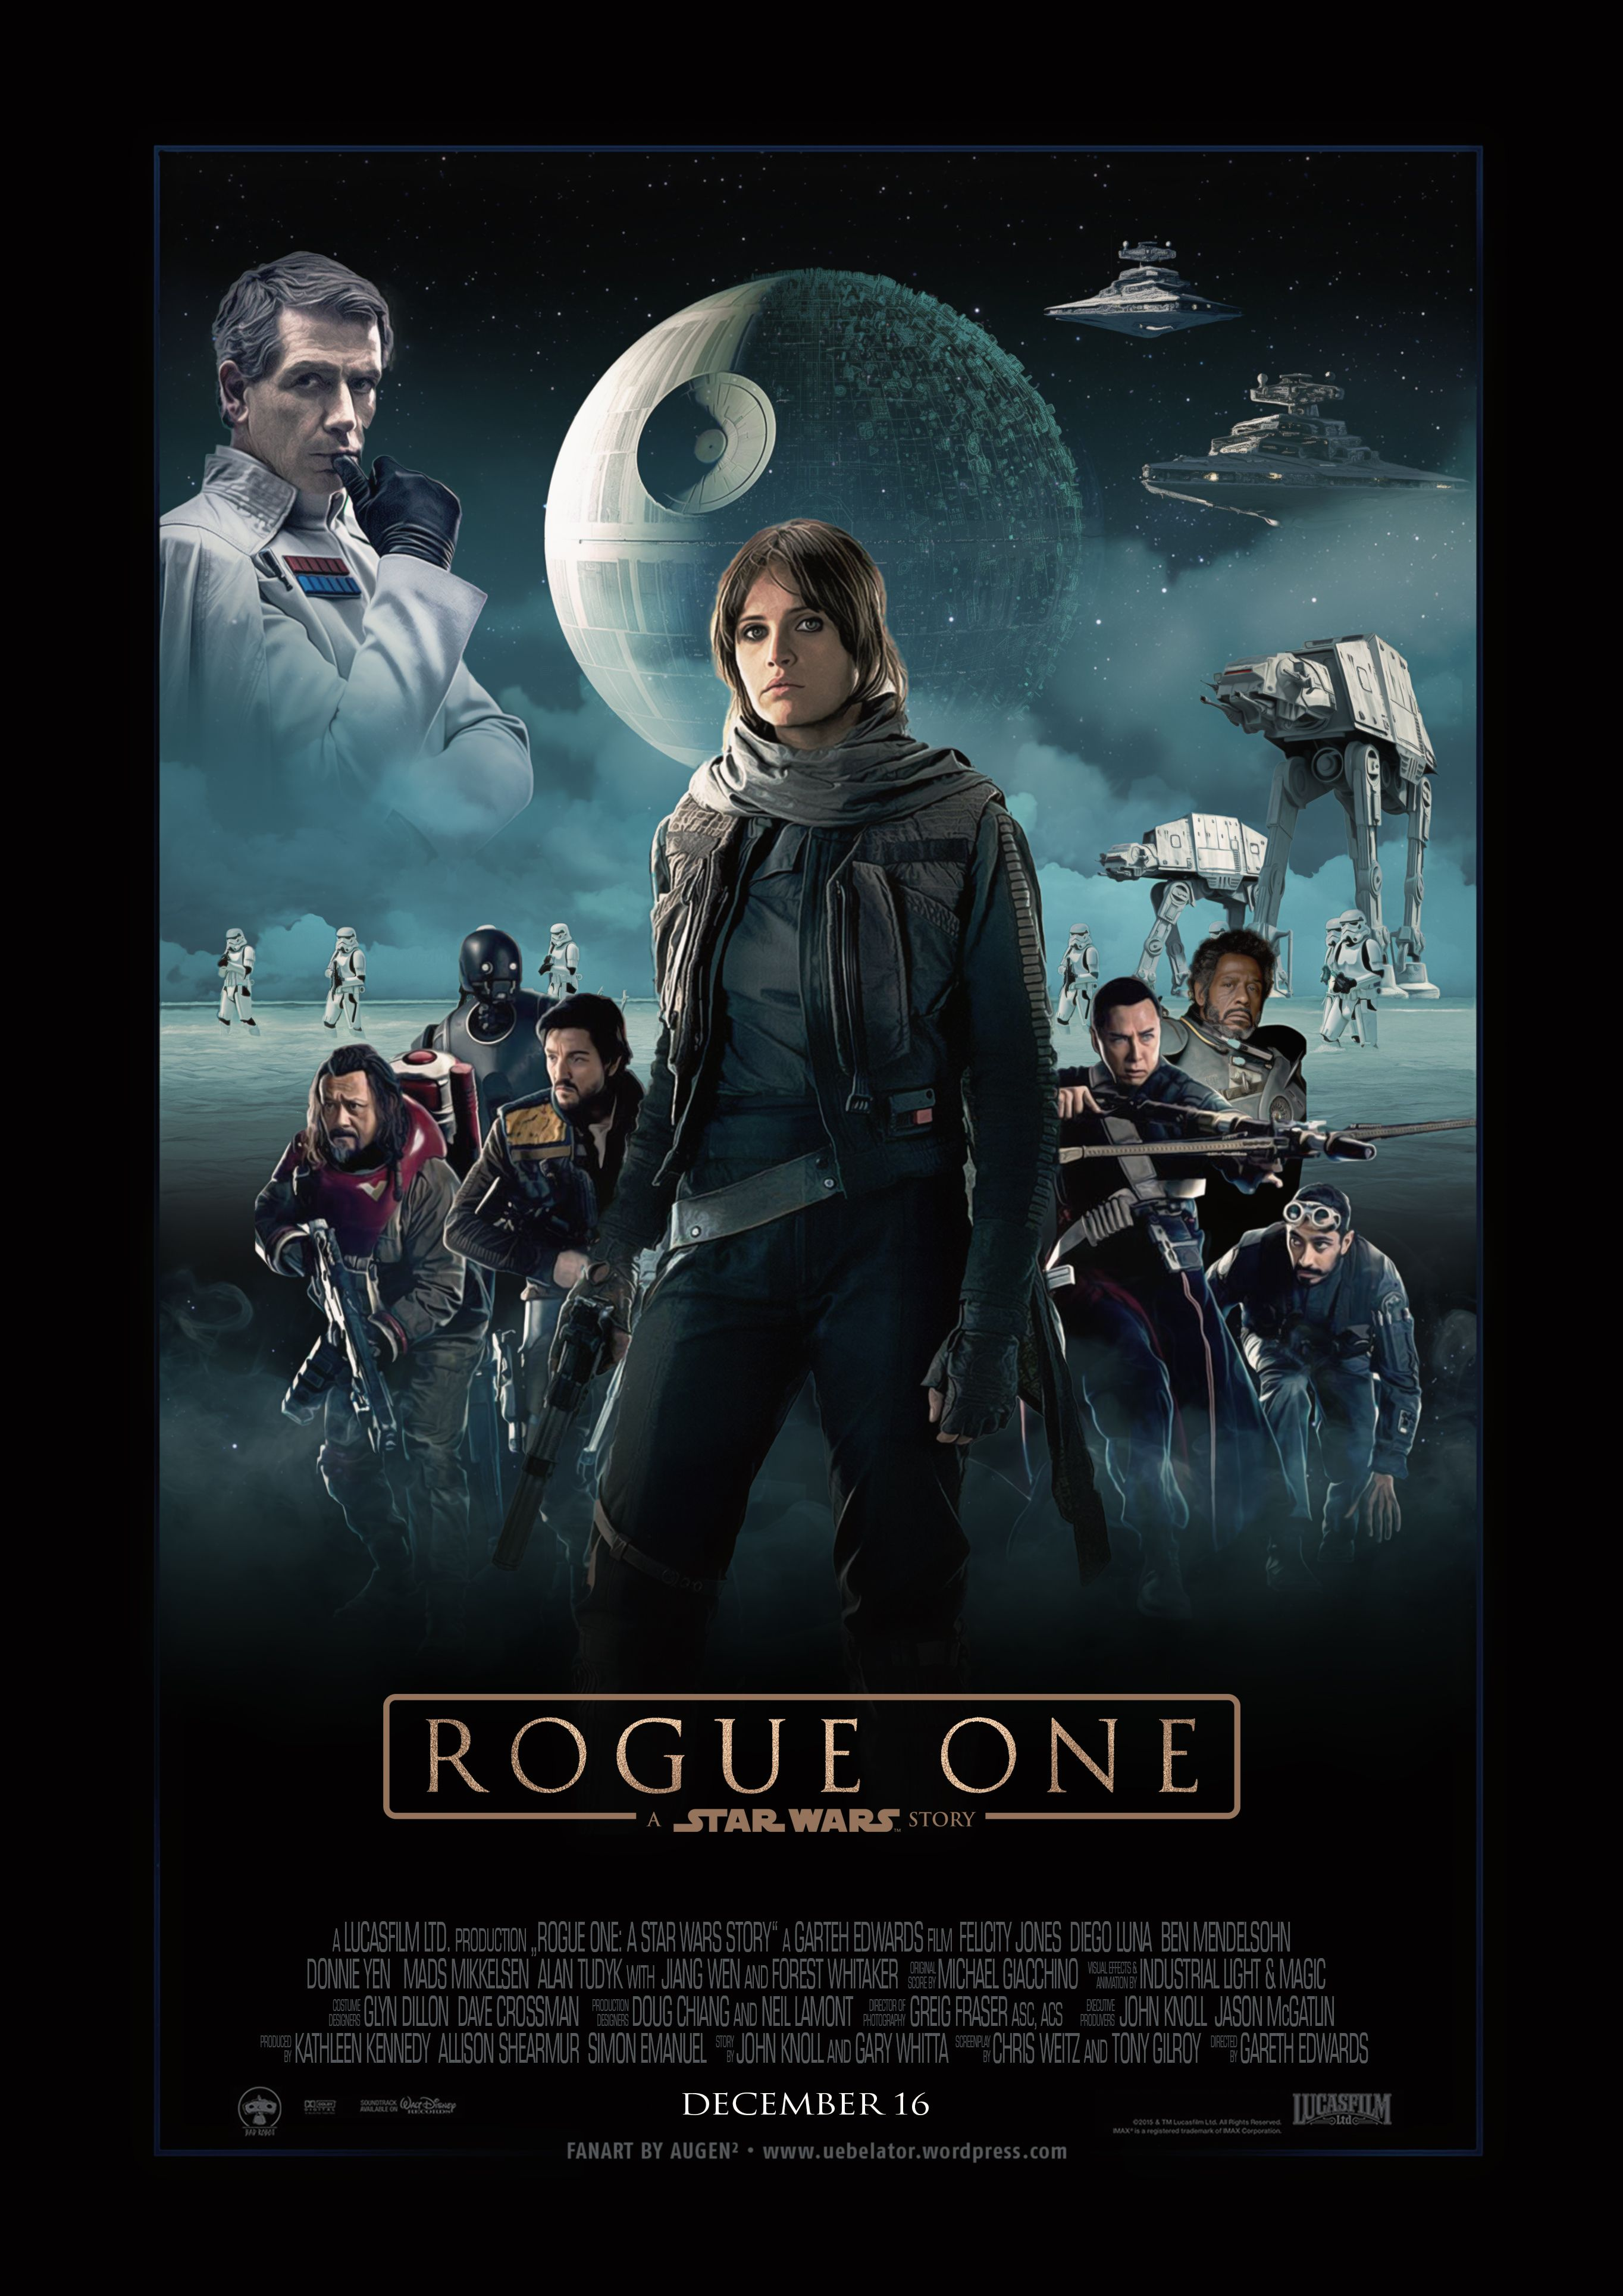 Fanart Movieposter For Rogue One A Star Wars Story Star Wars Movies Posters Star Wars Cartoon Star Wars Poster